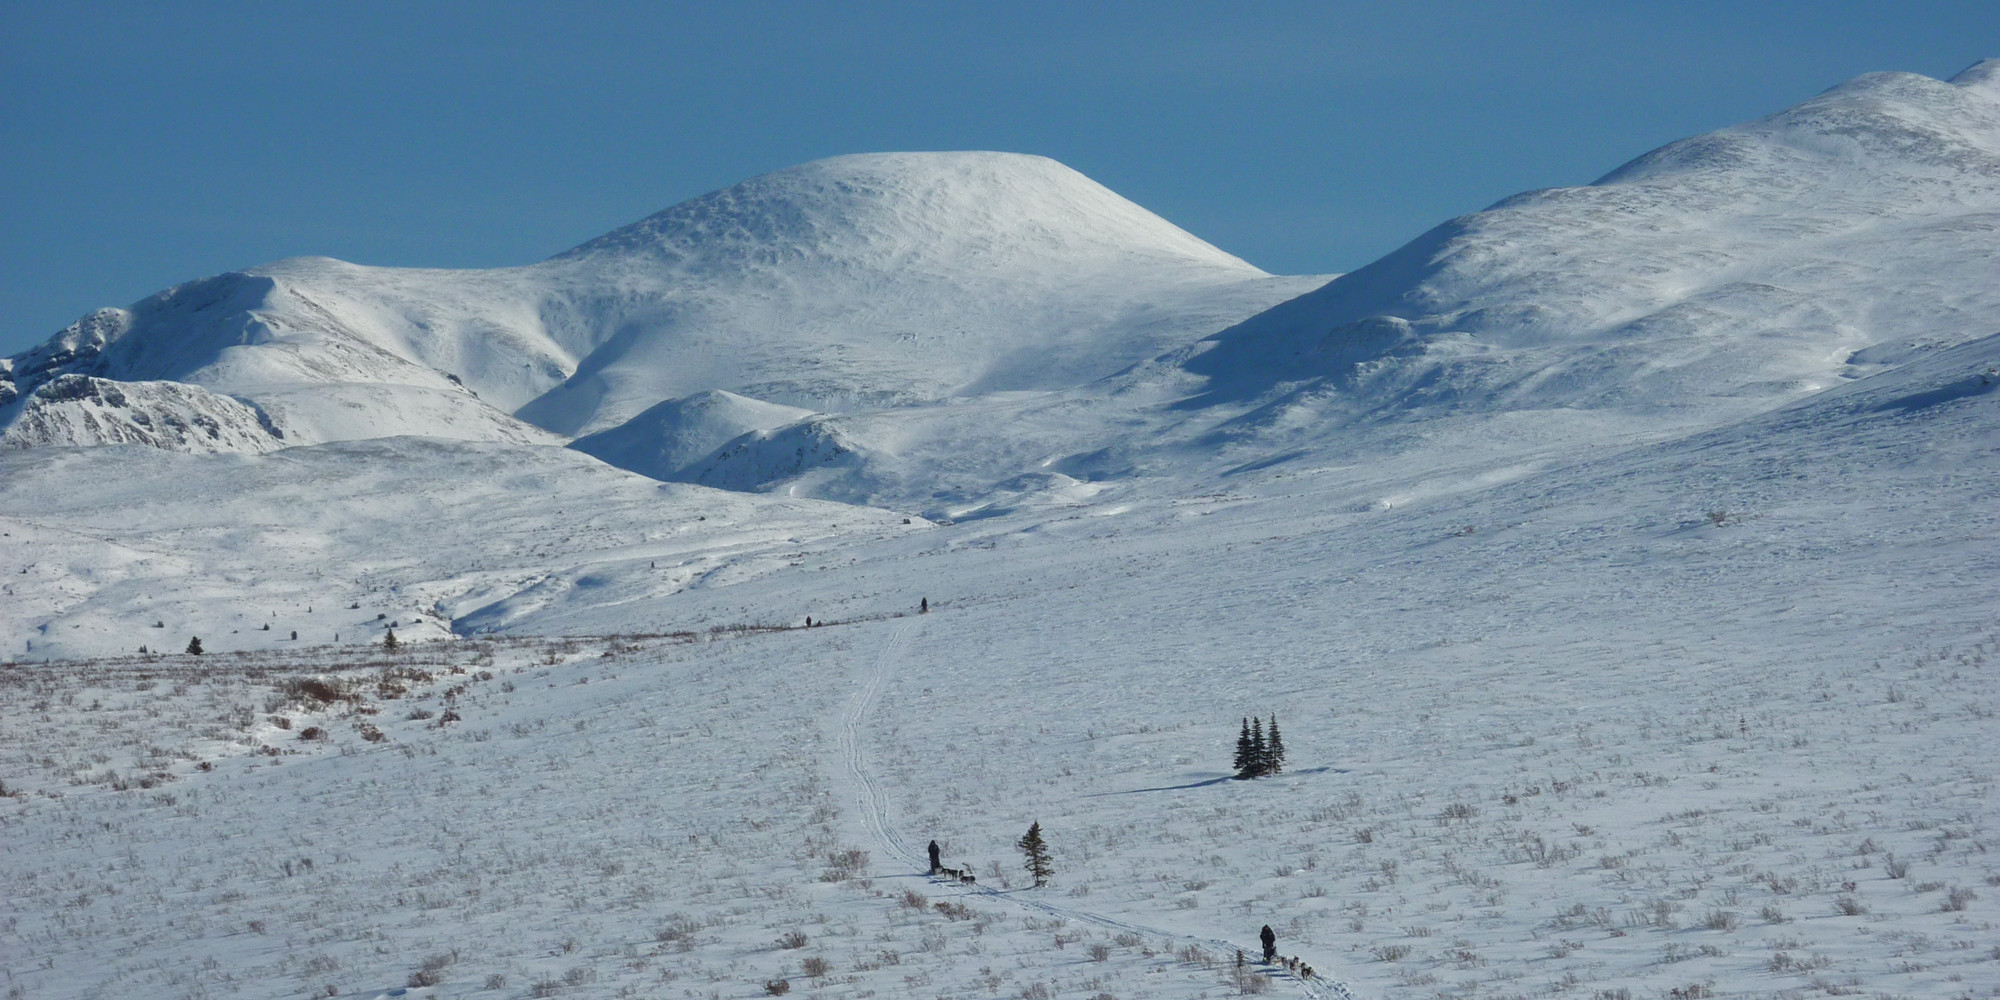 Into the Wild Adventures, dog sledding tours and winter adventures in the Yukon Territory, Canada - Contact Us